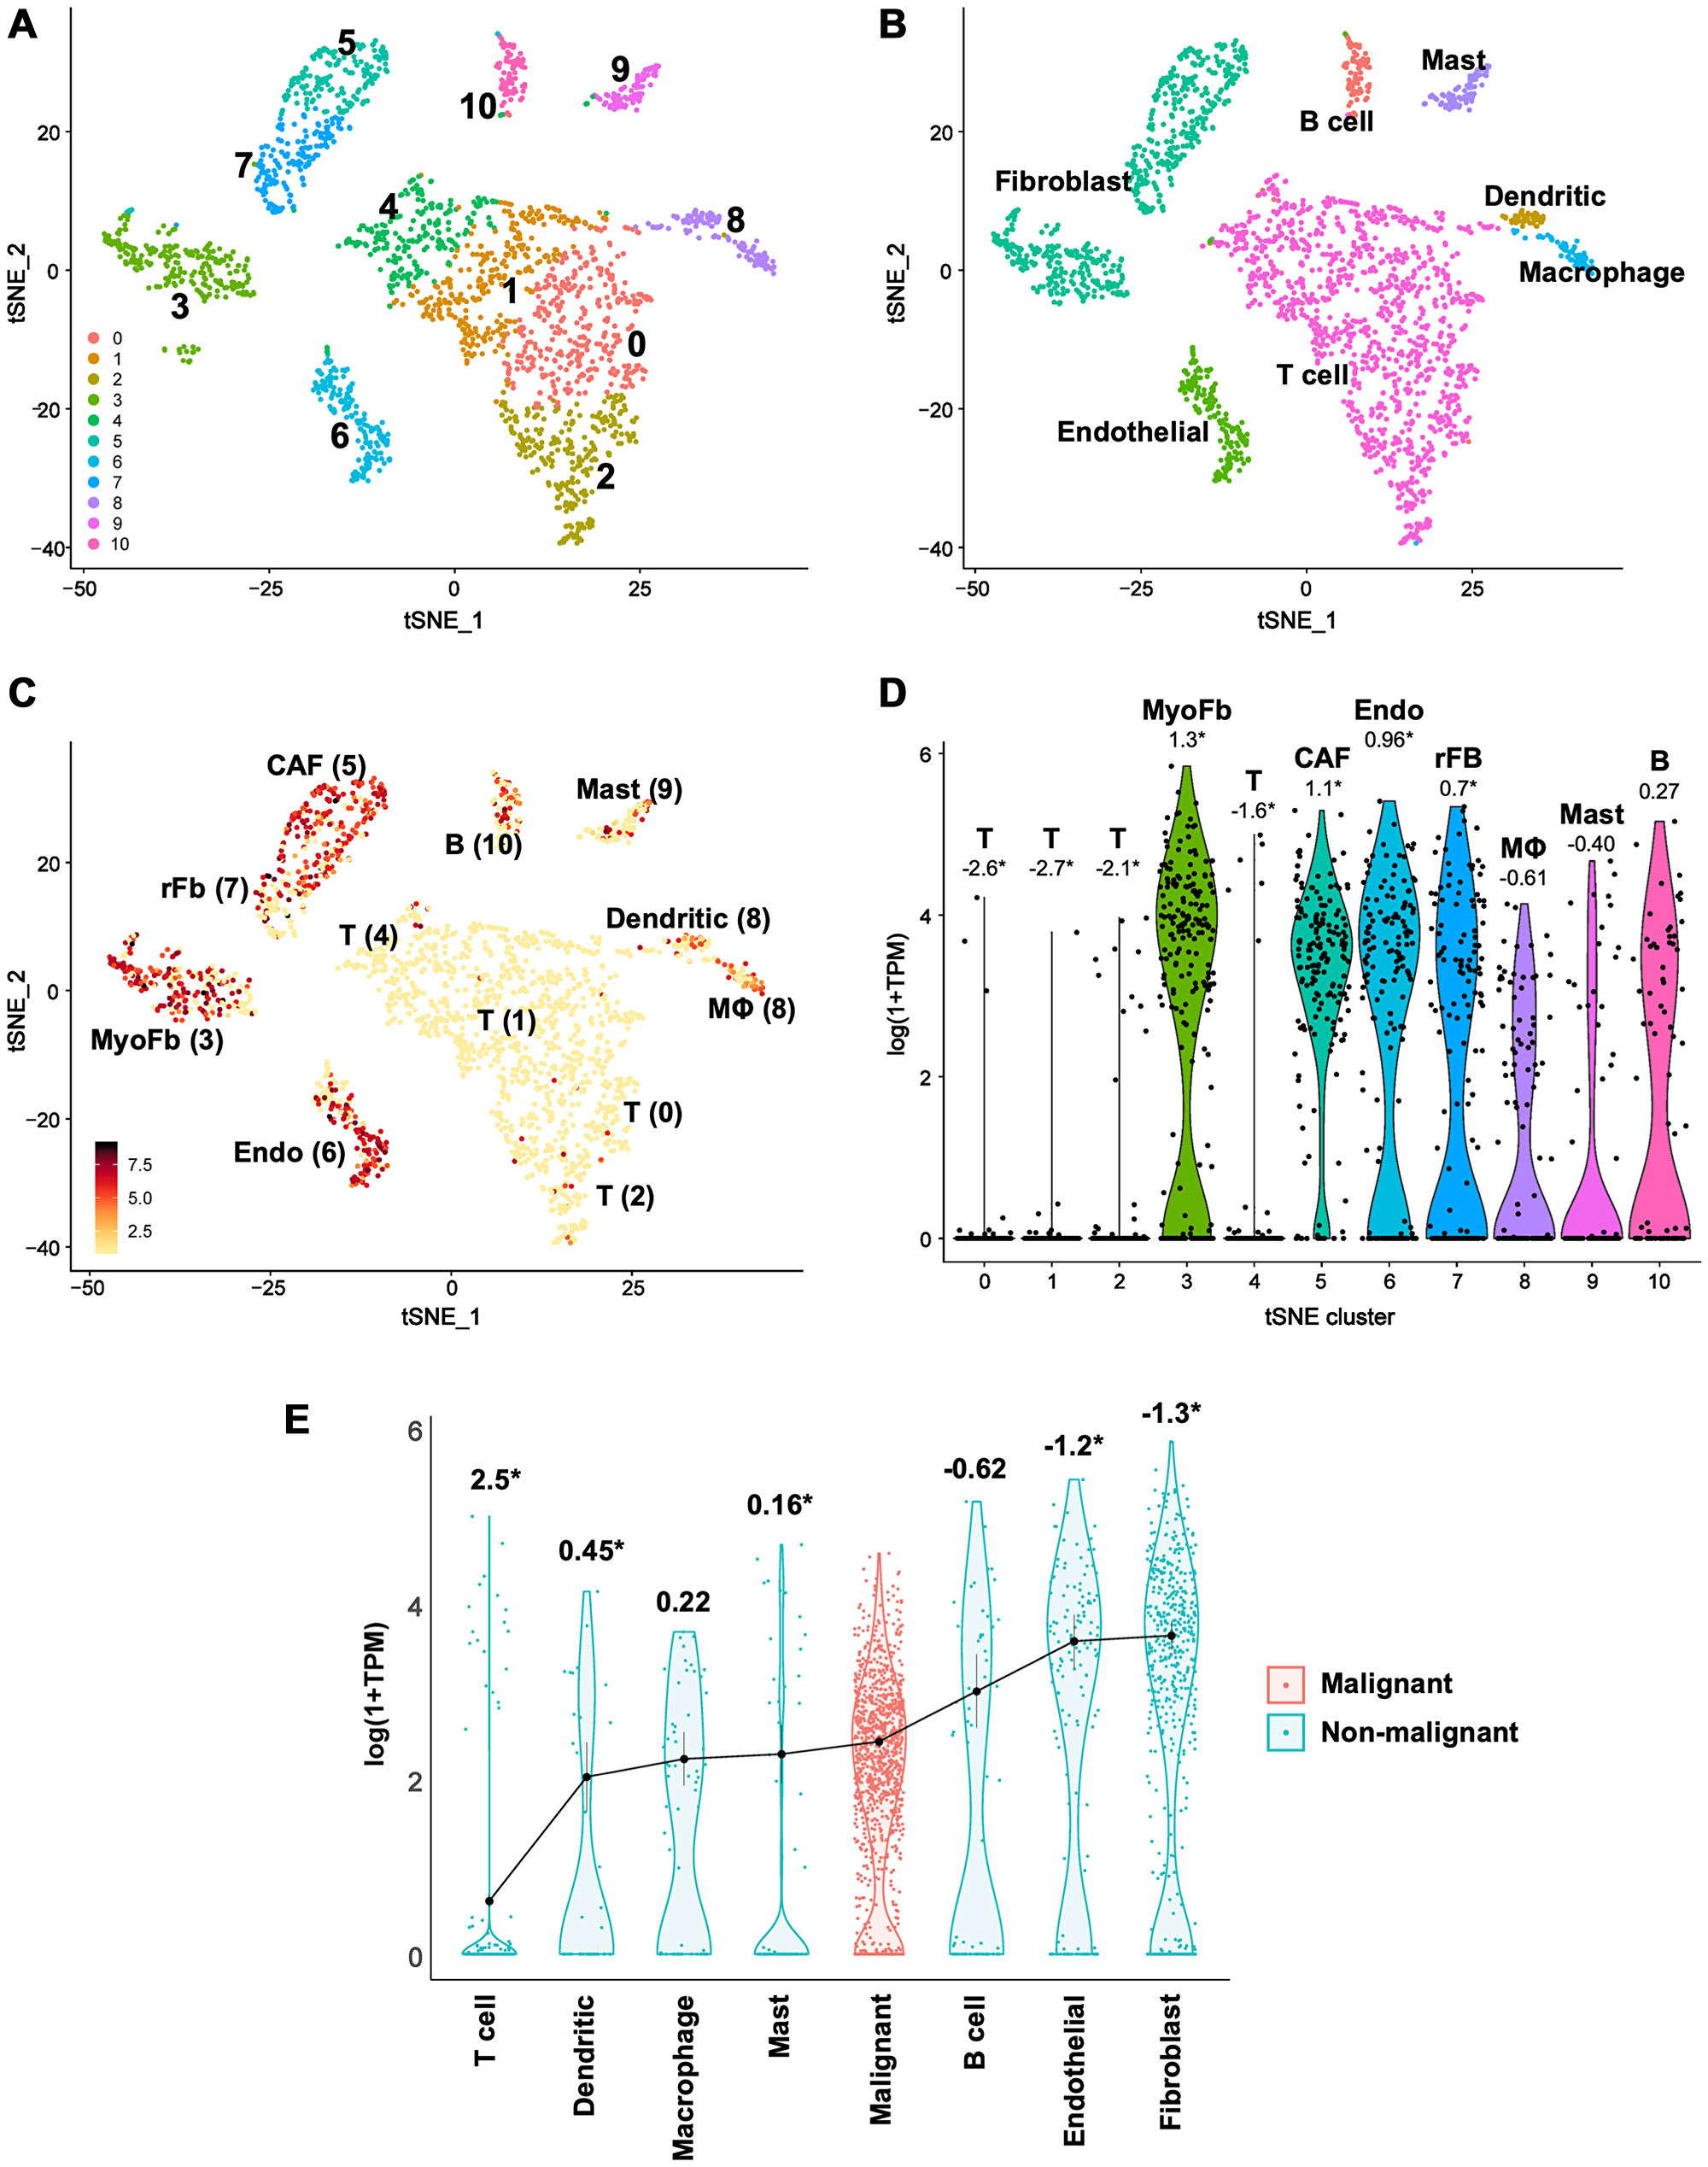 Single-cell RNA-seq data reveal lower CLIC4 expression in malignant tumor cells than in stromal fibroblasts in HNSCC.